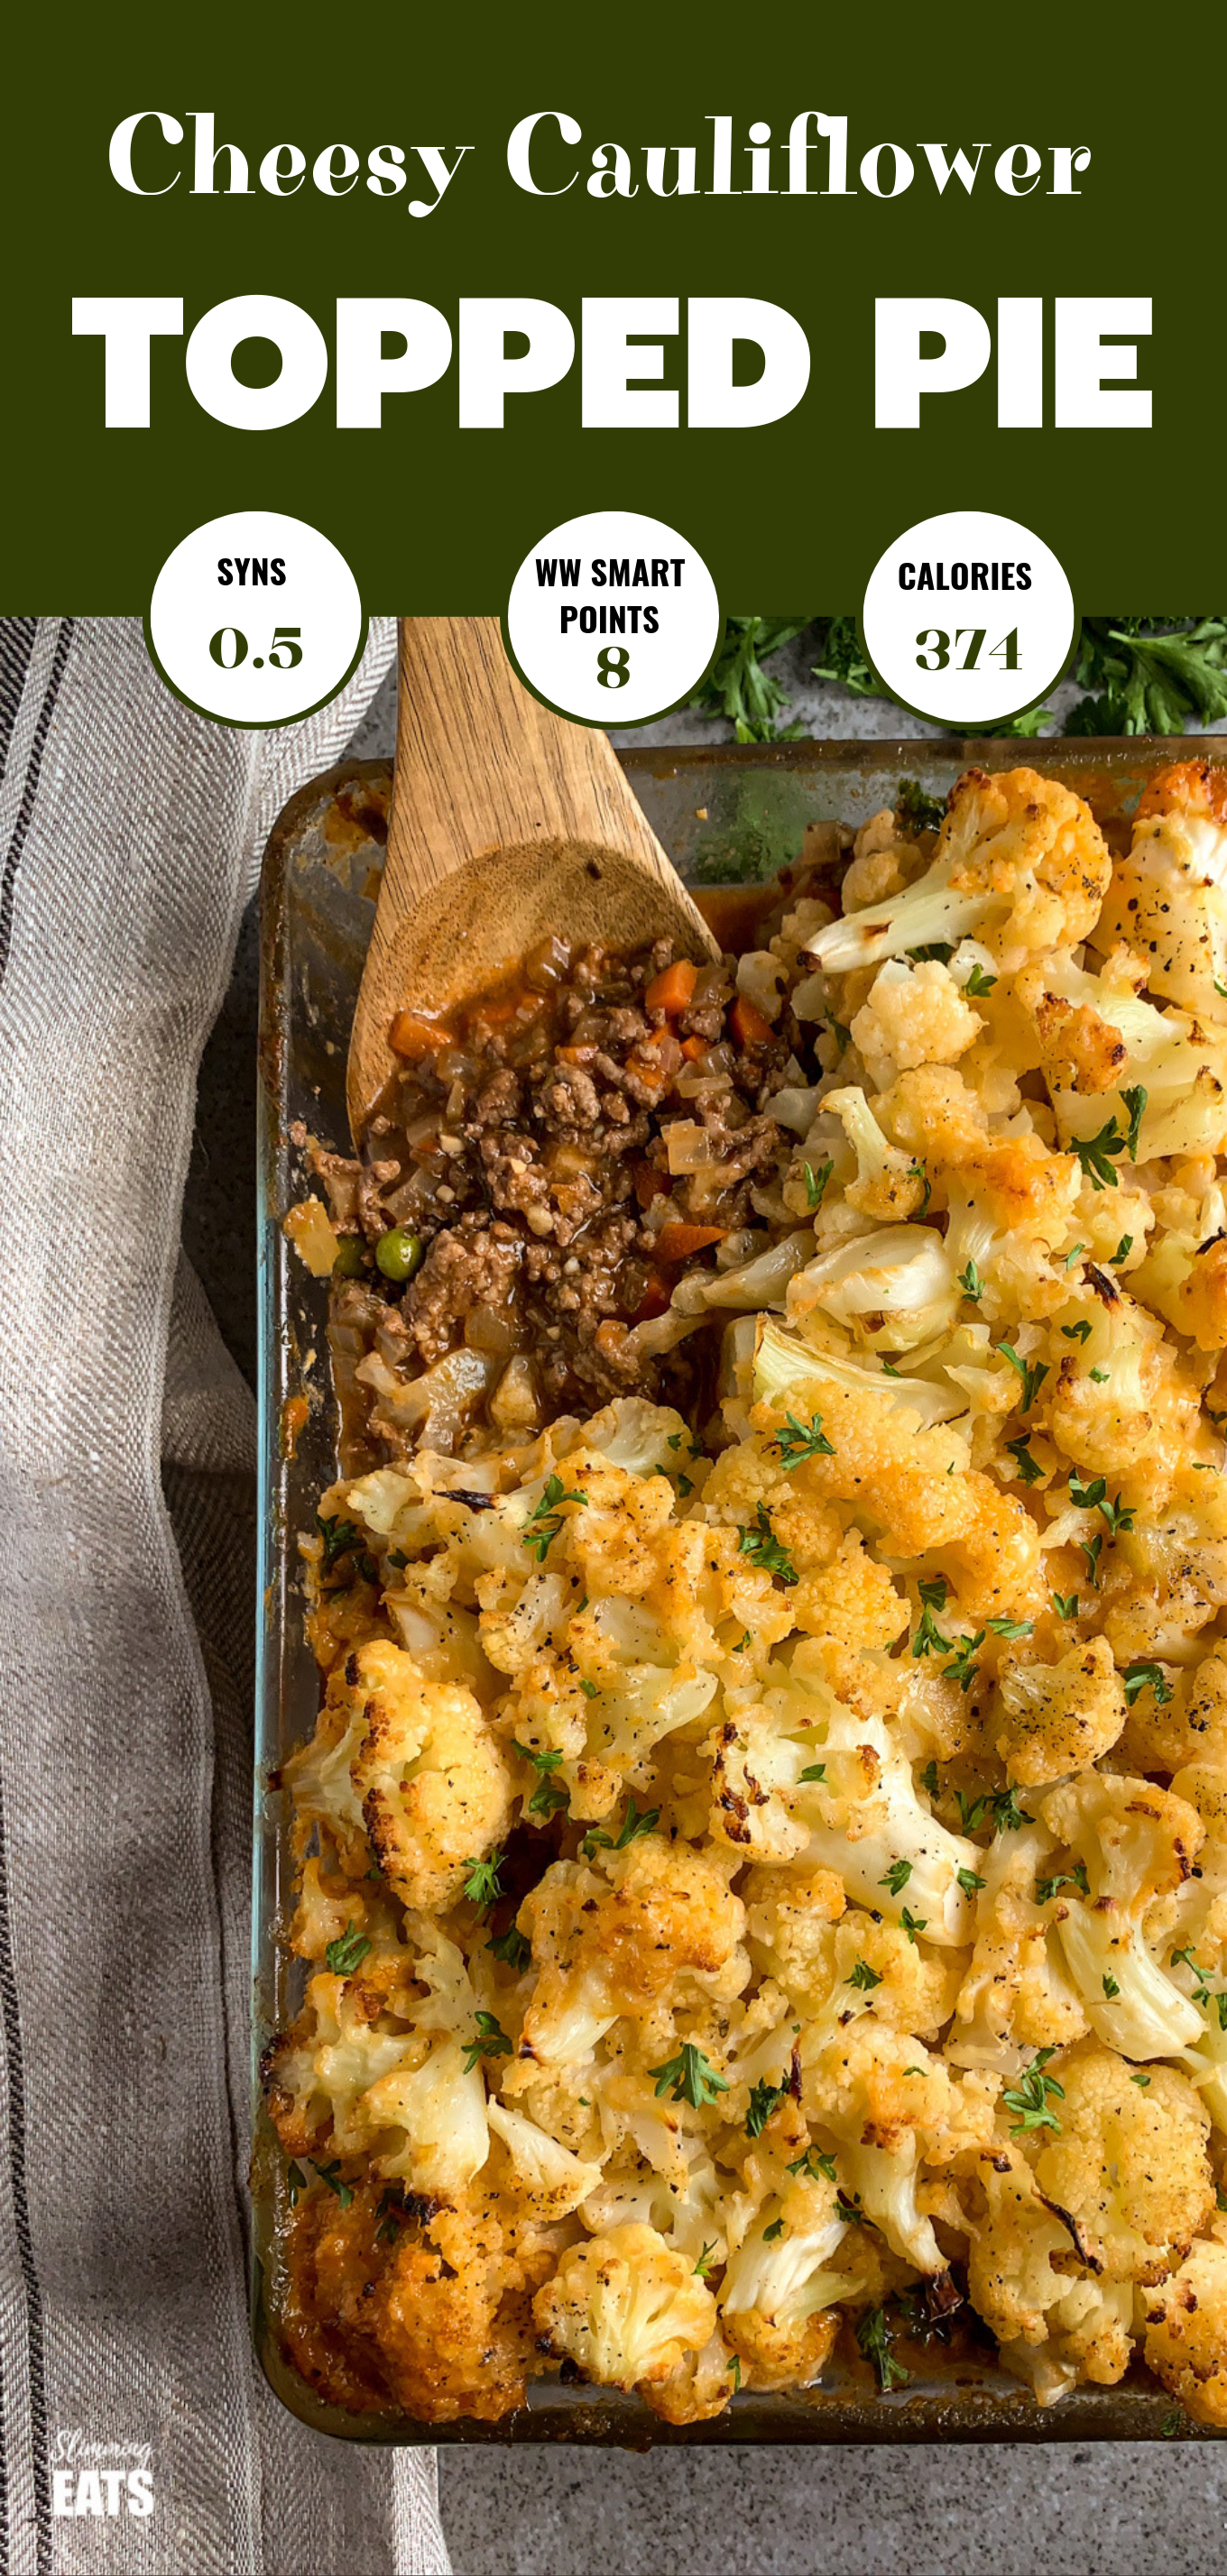 Cheesy Cauliflower Topped Pie Feature Pin Image